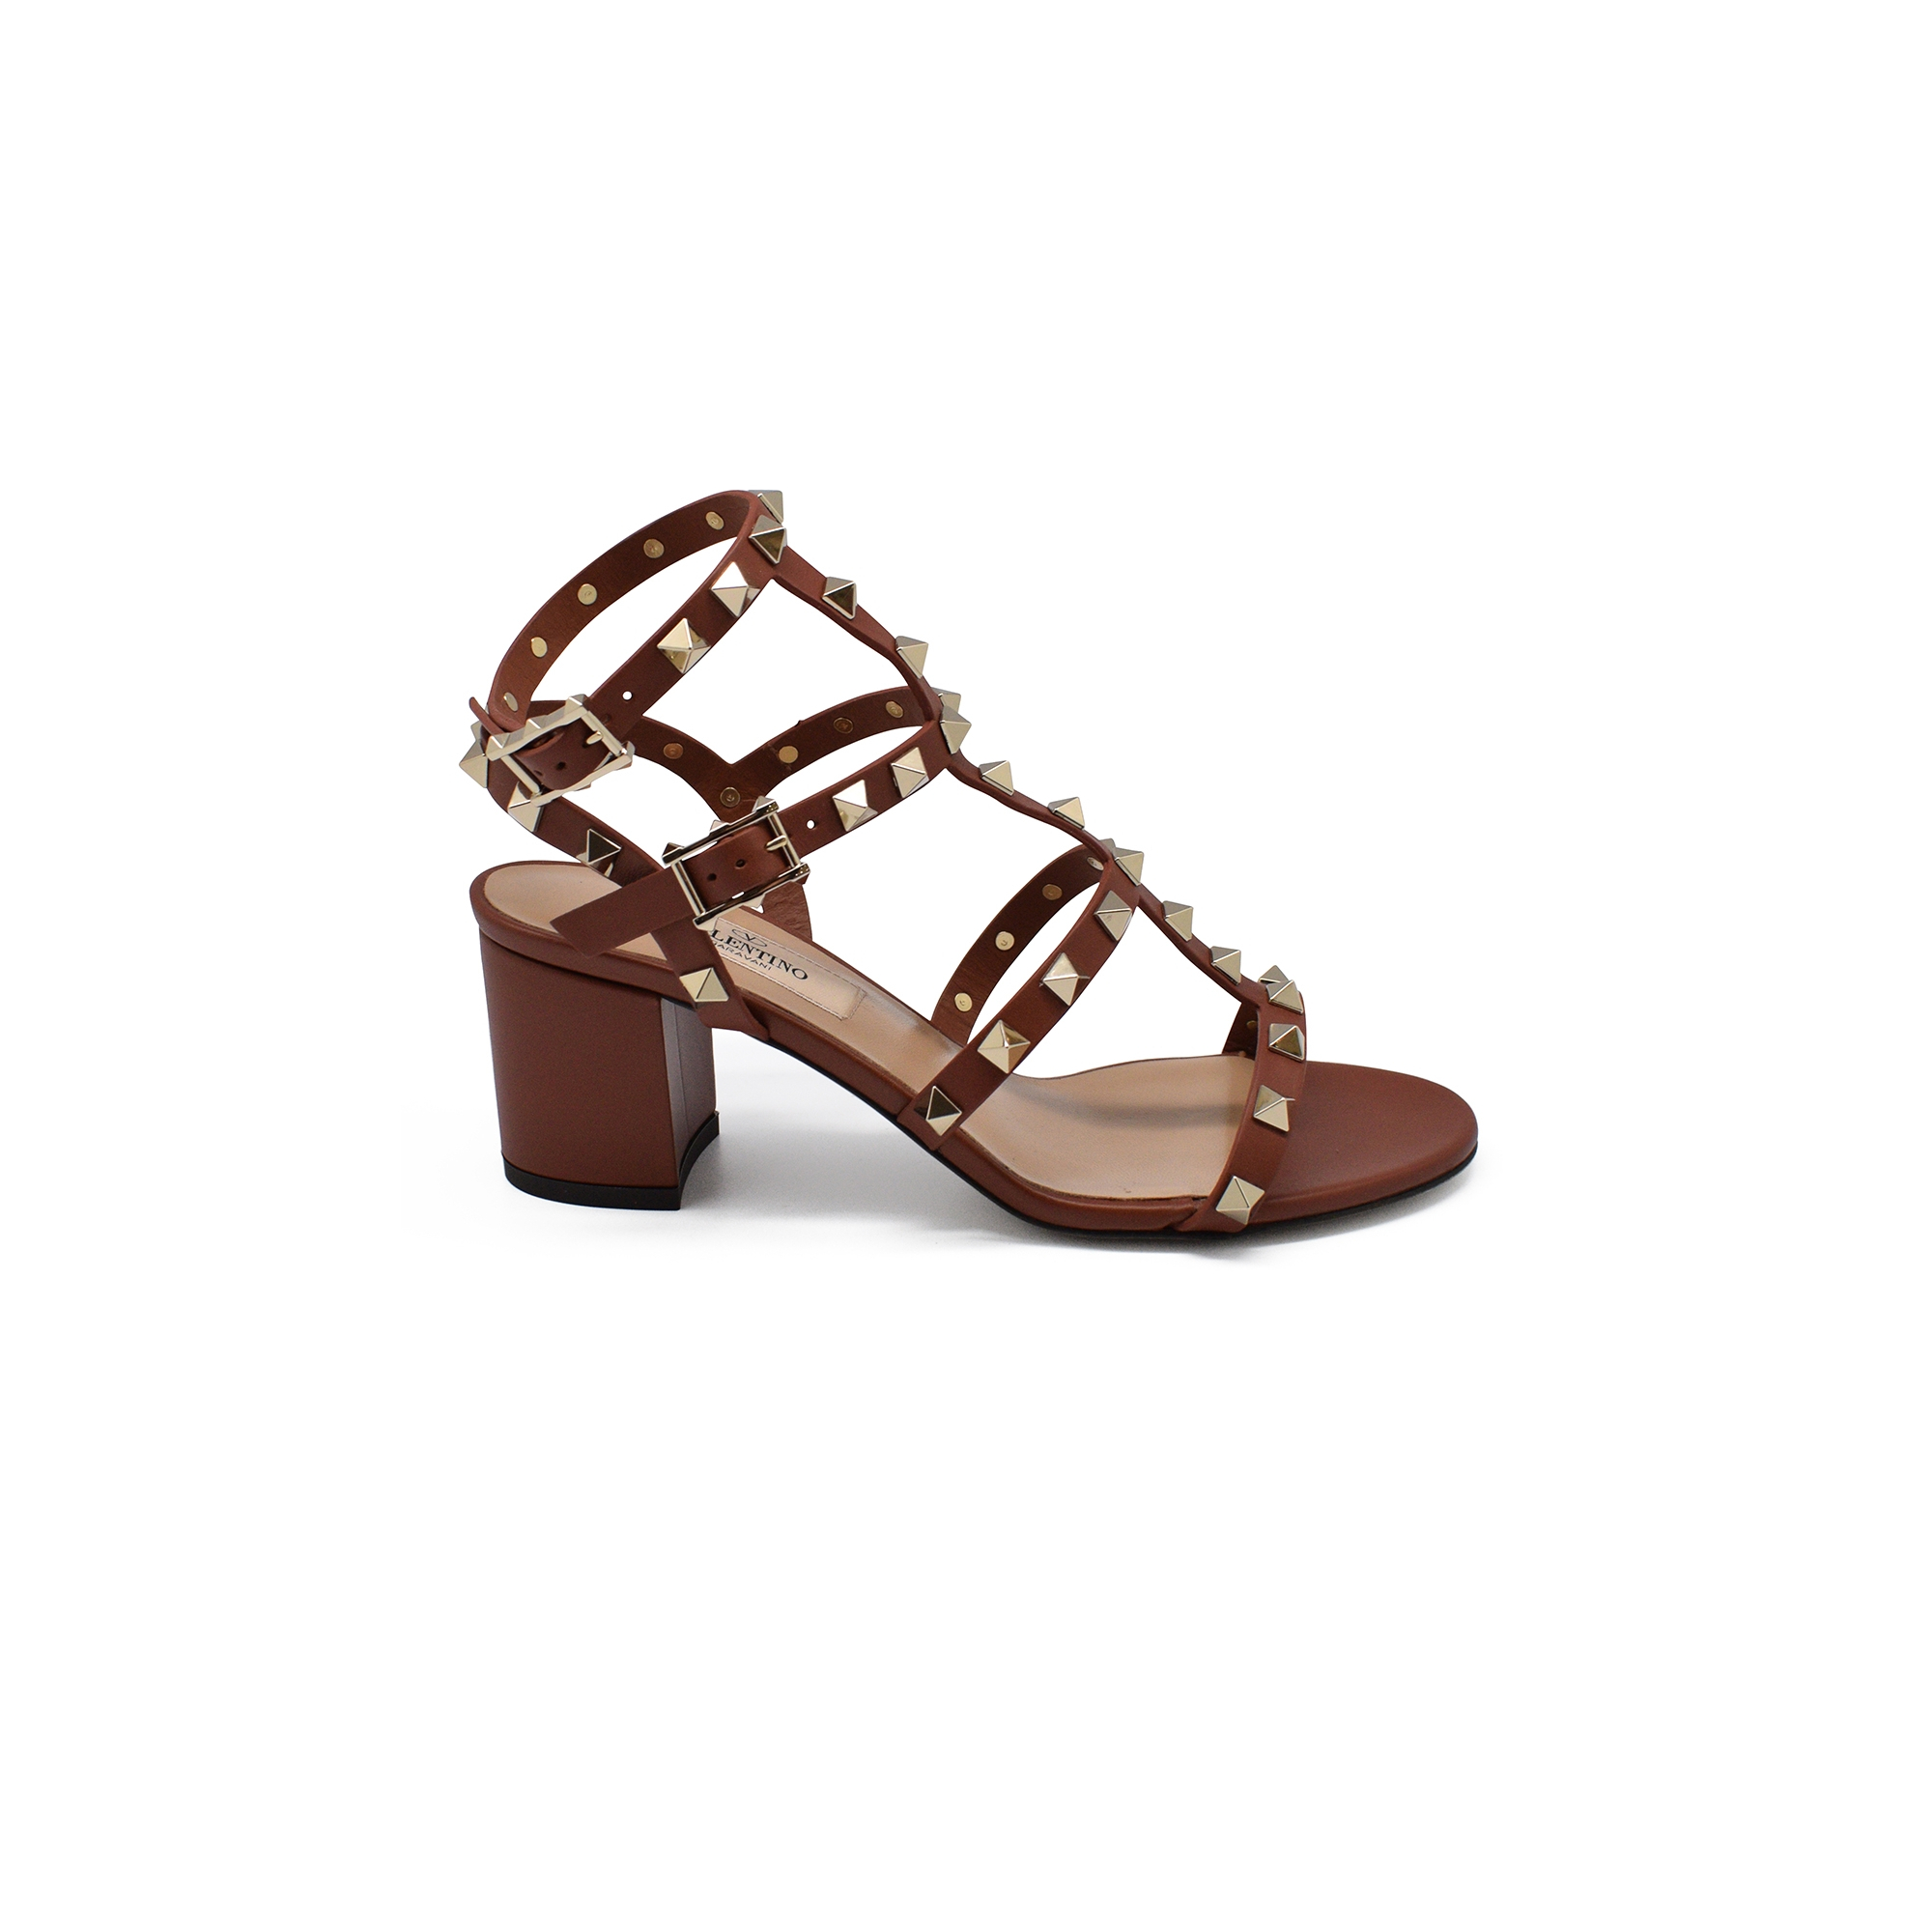 Valentino Rockstud sandals in brown leather with platinium finish studs and low heel